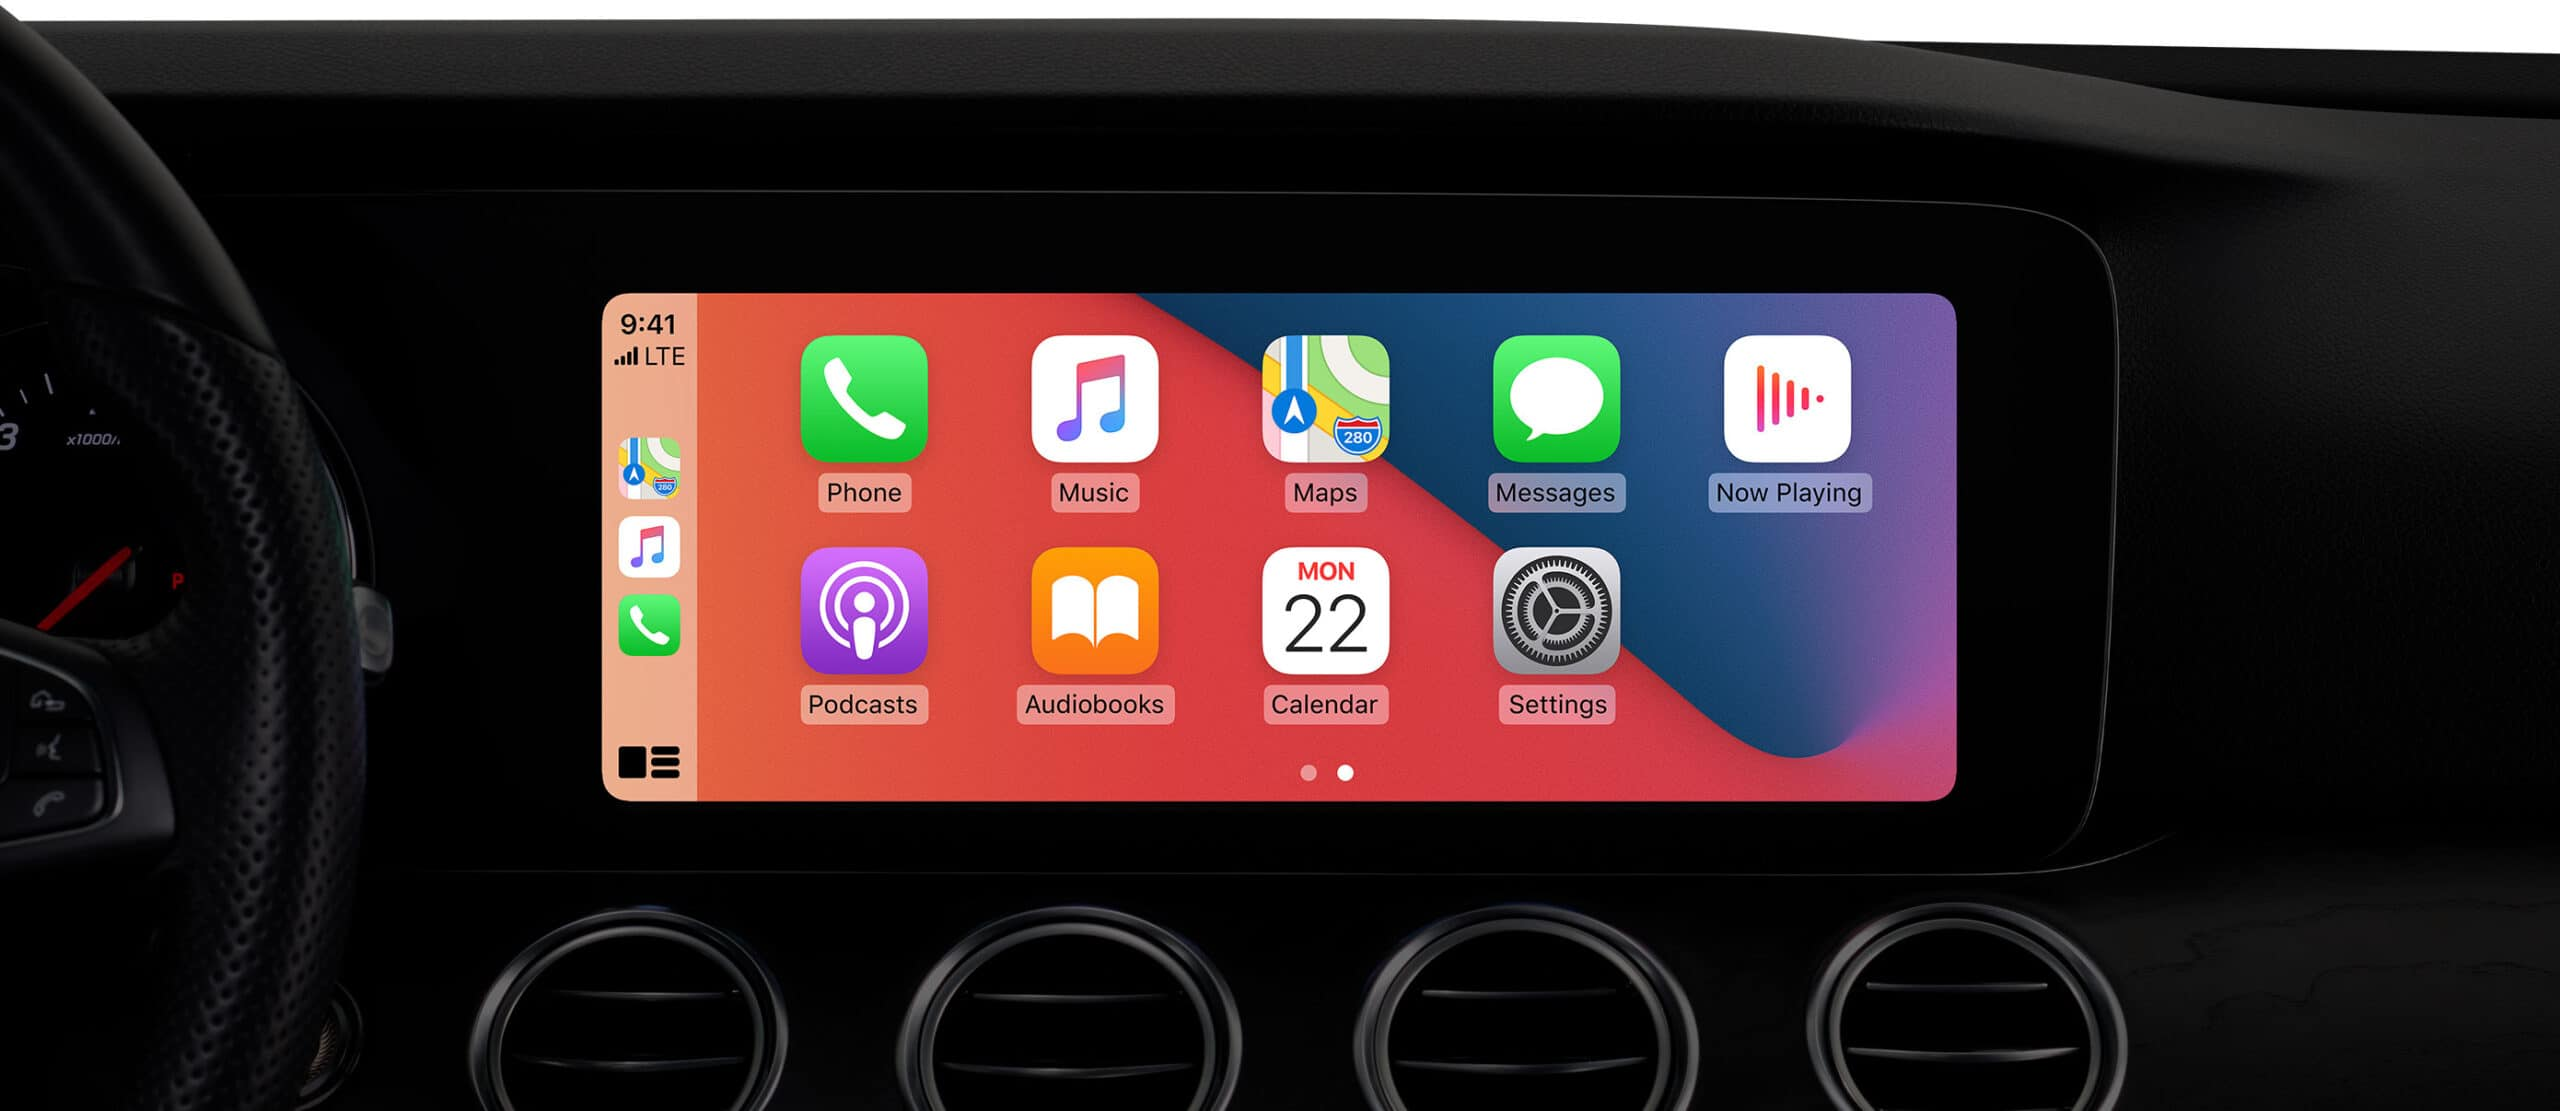 CarPlay com wallpaper personalizado